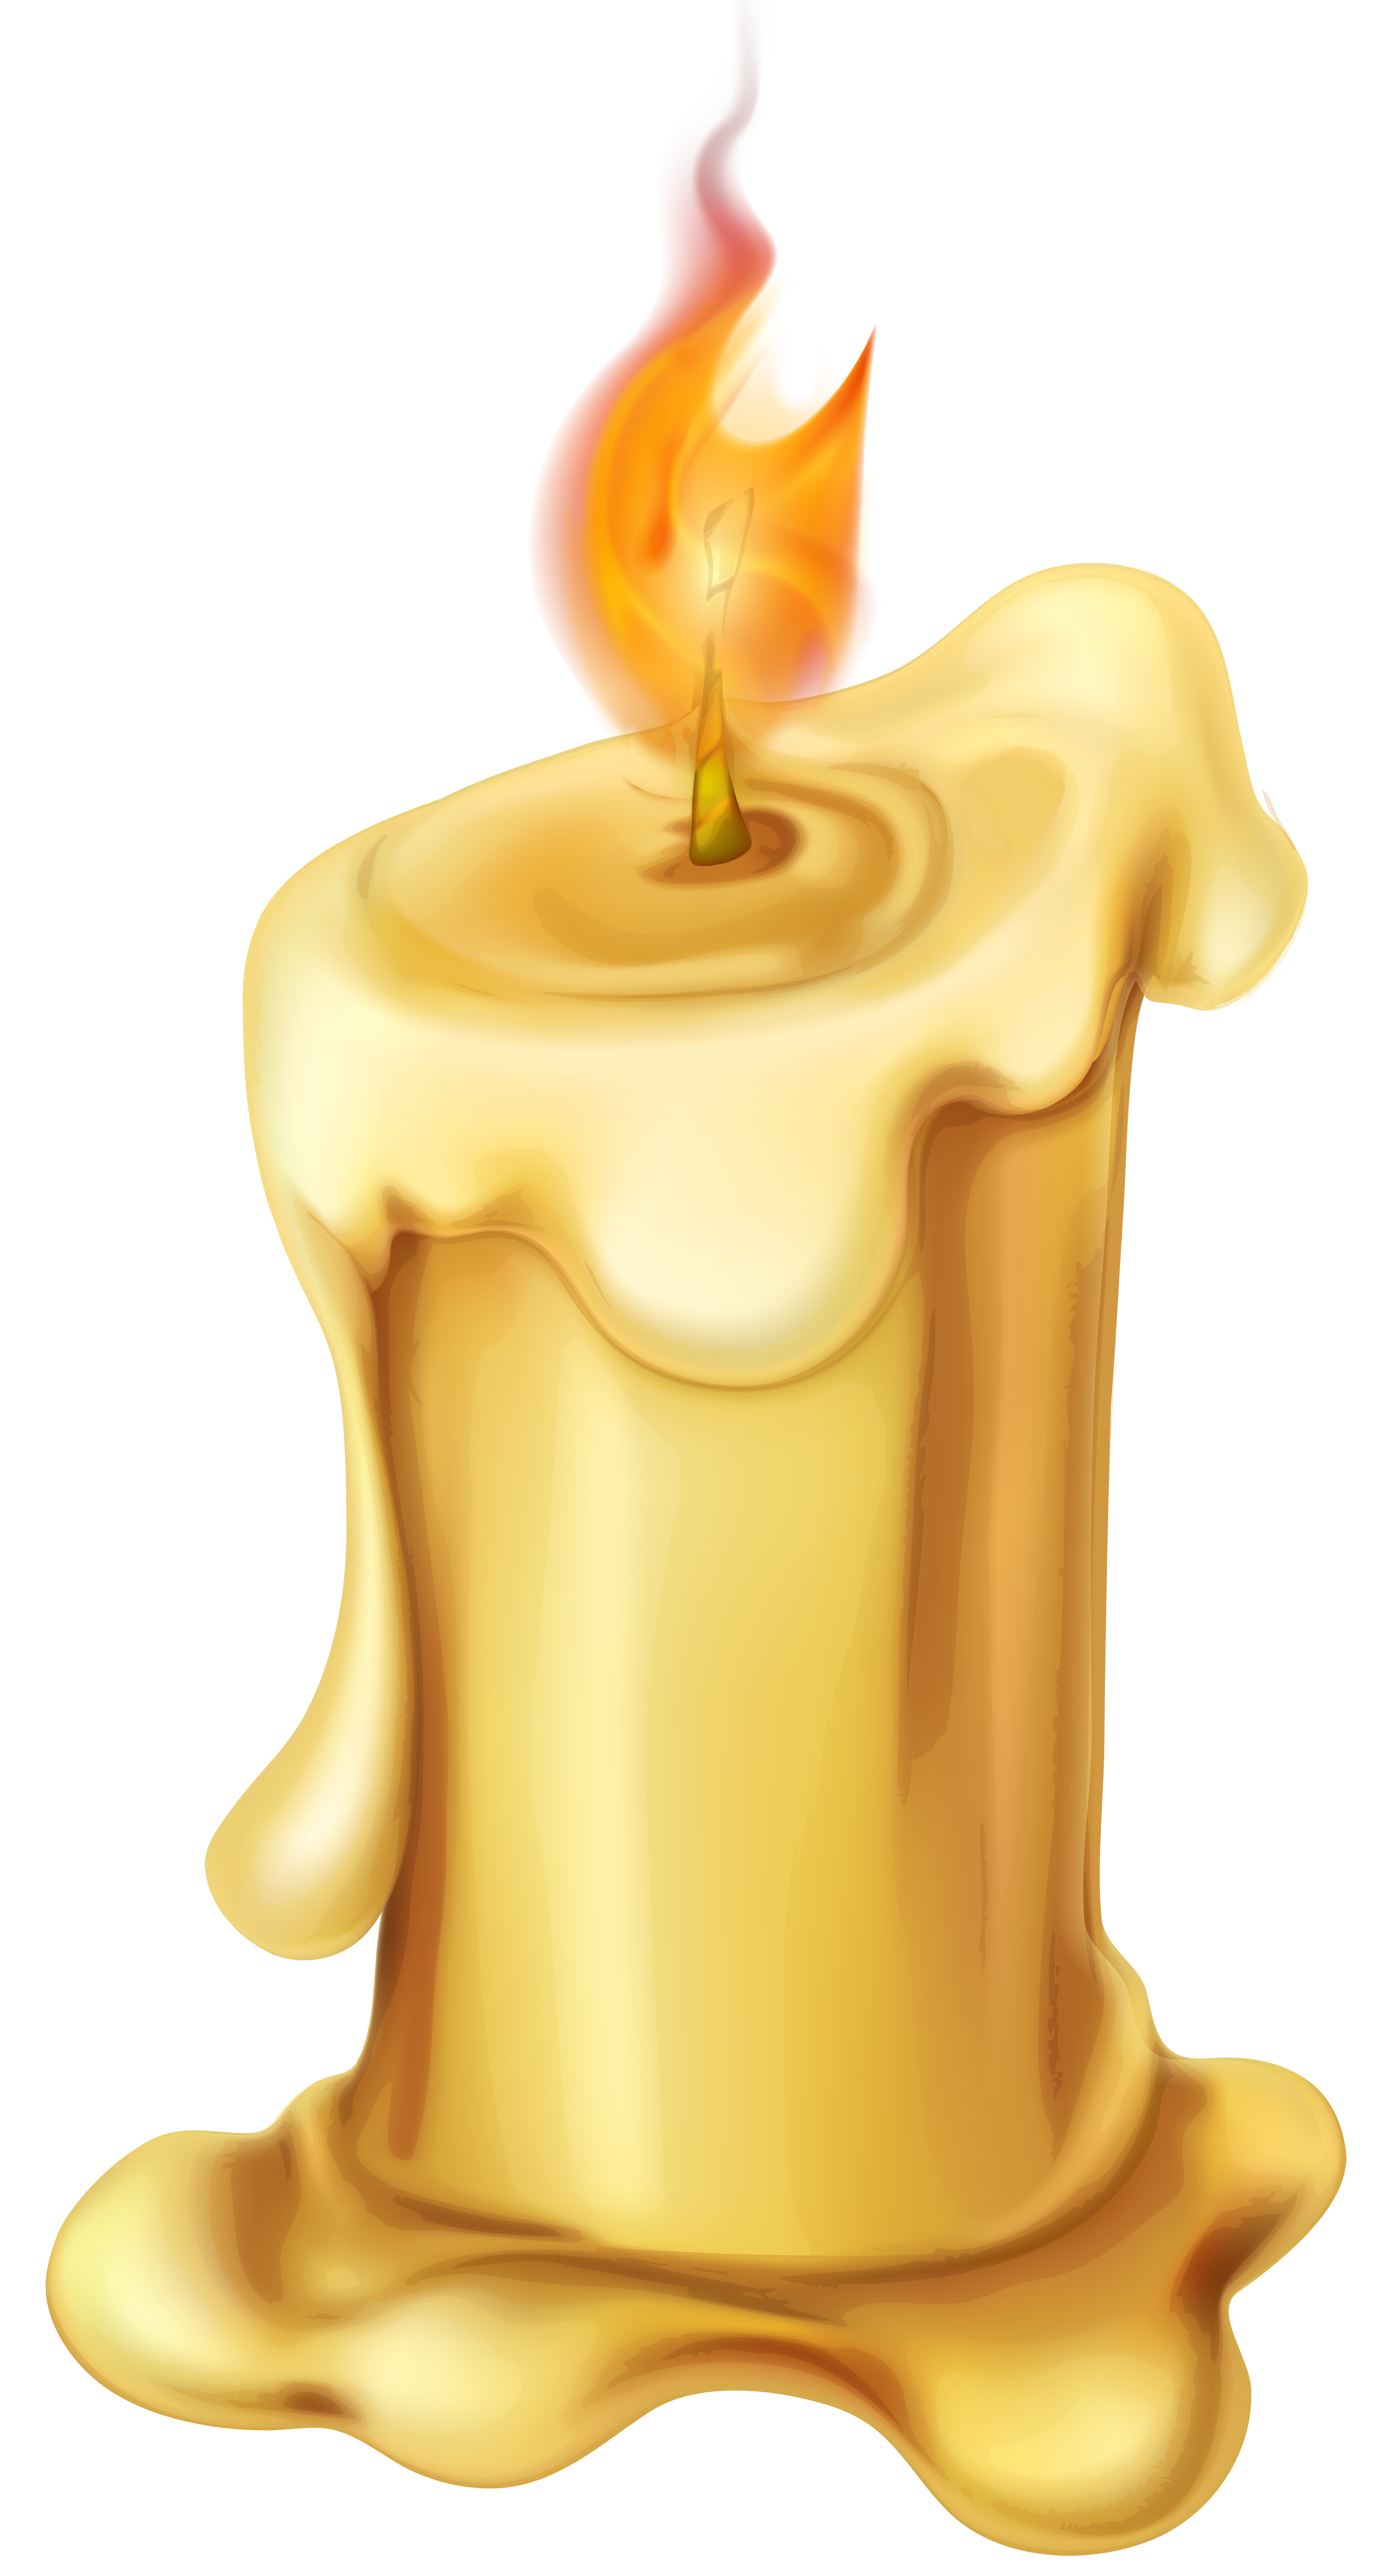 jpg library stock Melting wax free on. Clock clipart candle.